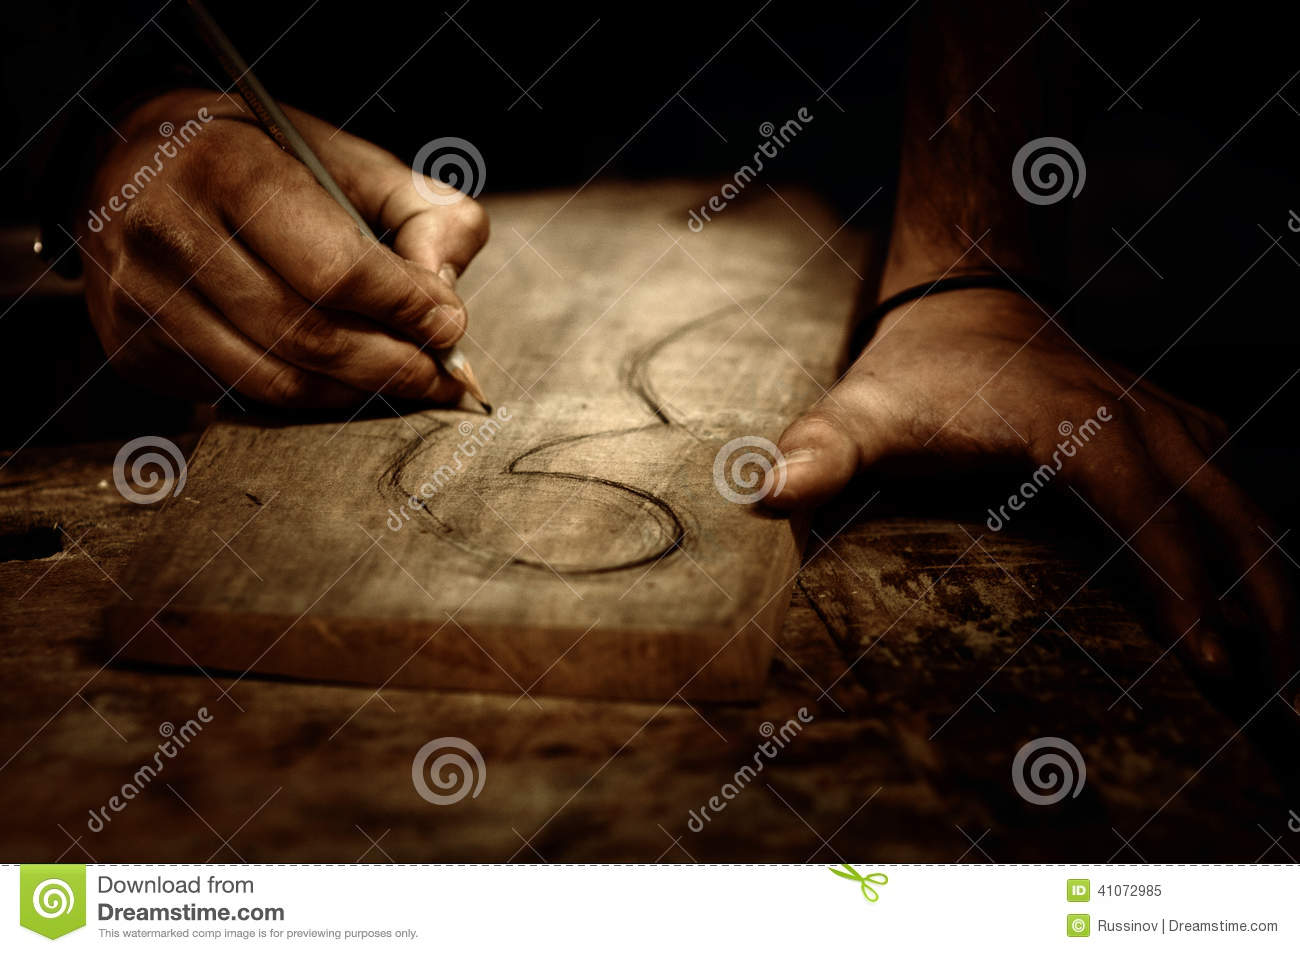 Download Wood carving stock image. Image of hands, handmade, process - 41072985